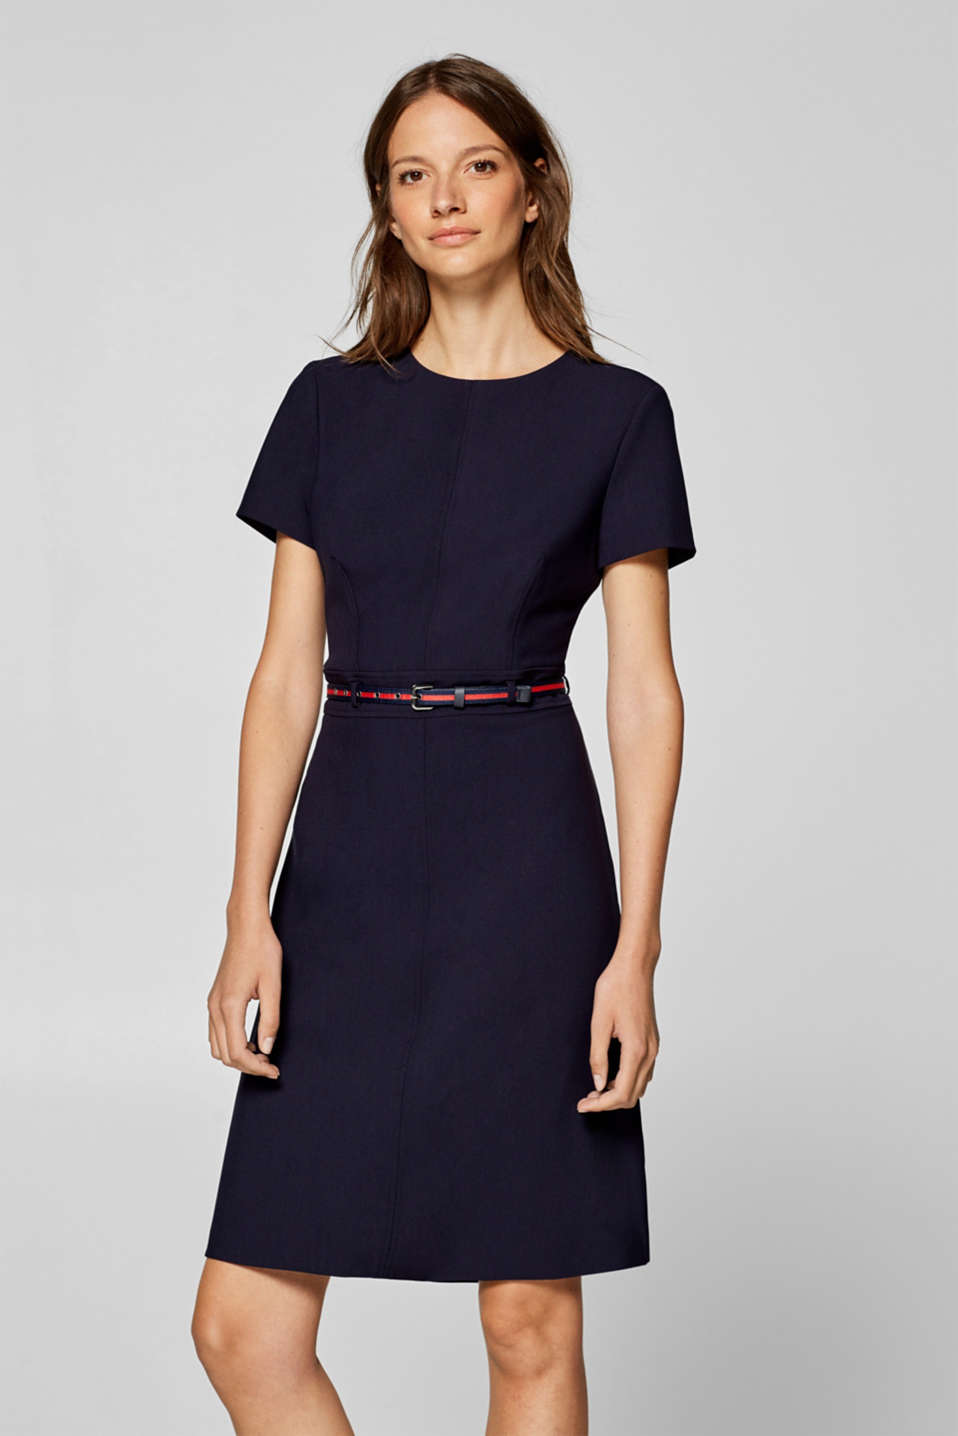 Esprit - Sheath dress with a belt and stretch for comfort